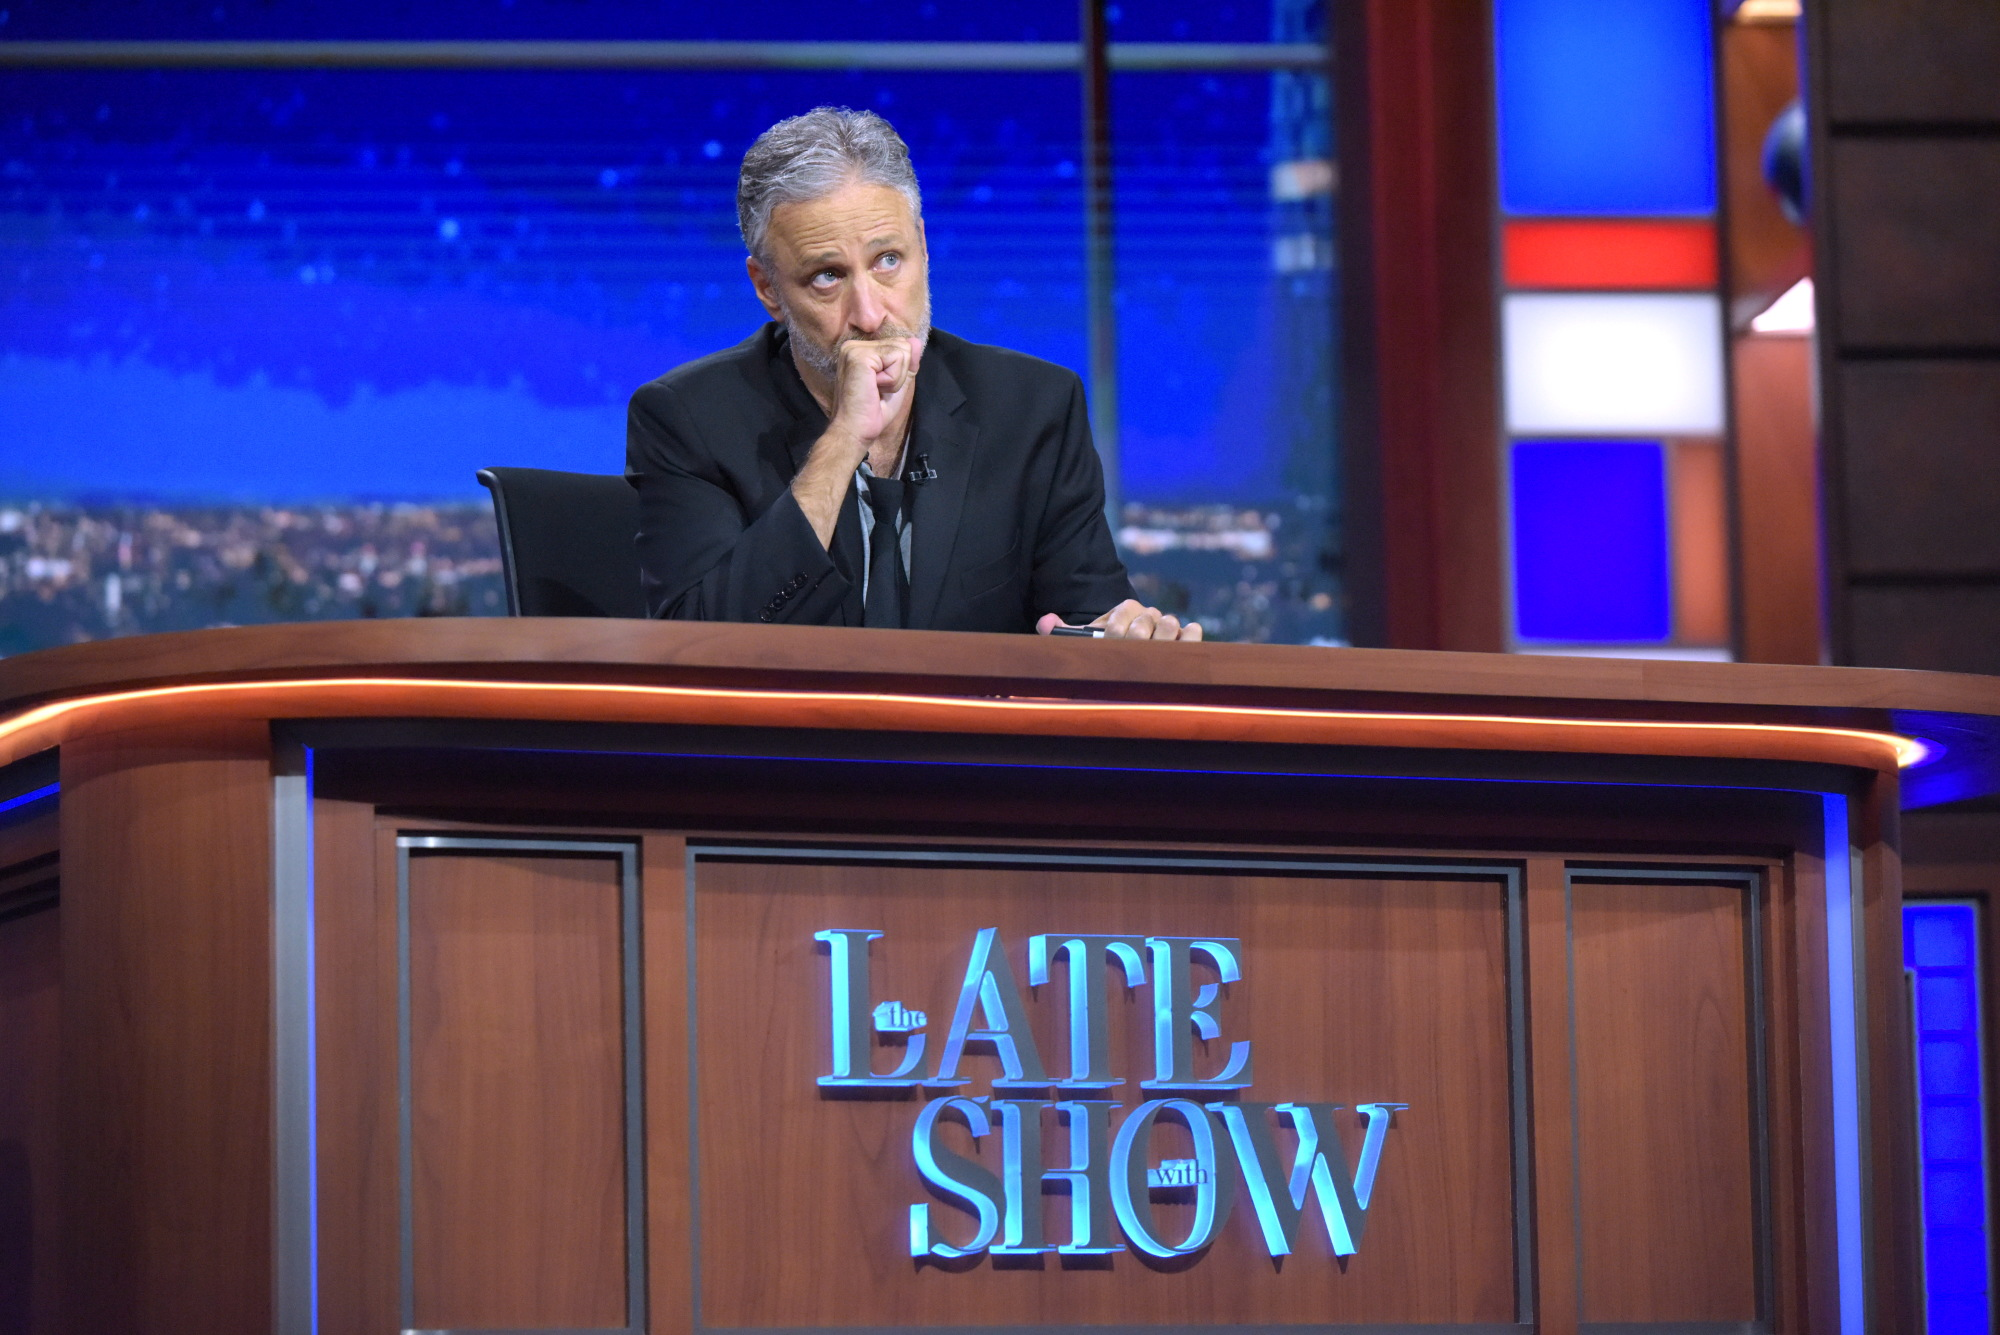 The Late Show with Stephen Colbert airing live, Thursday July 21, 2016 in New York. With guest John Stewart.  Photo: Scott Kowalchyk/CBS ©2016CBS Broadcasting Inc. All Rights Reserved.